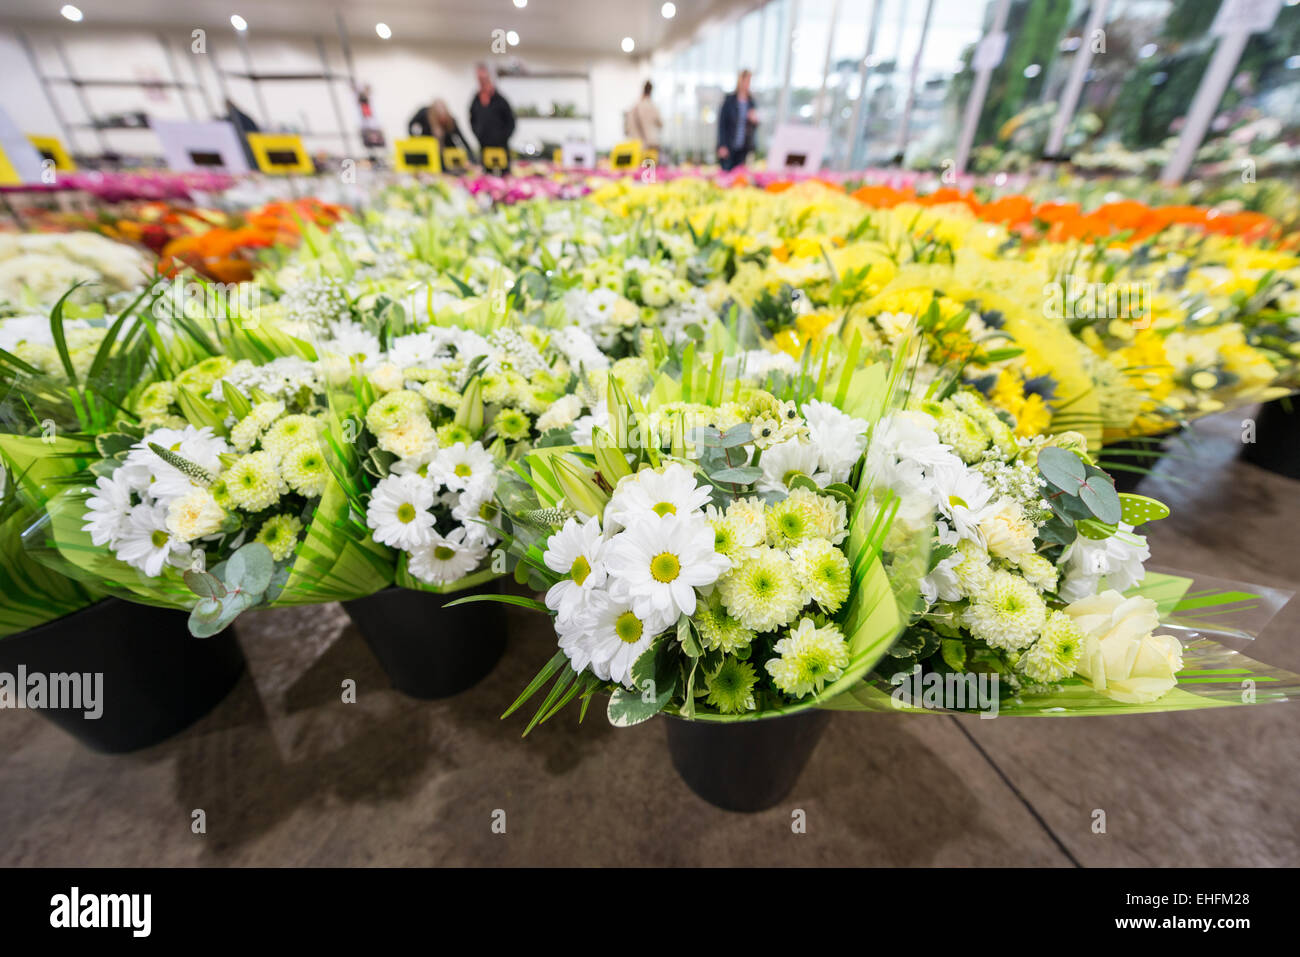 Wholesale florist stock photos wholesale florist stock images alamy bedfordshire uk 13th march 2015 a mass of colourful flowers are on mightylinksfo